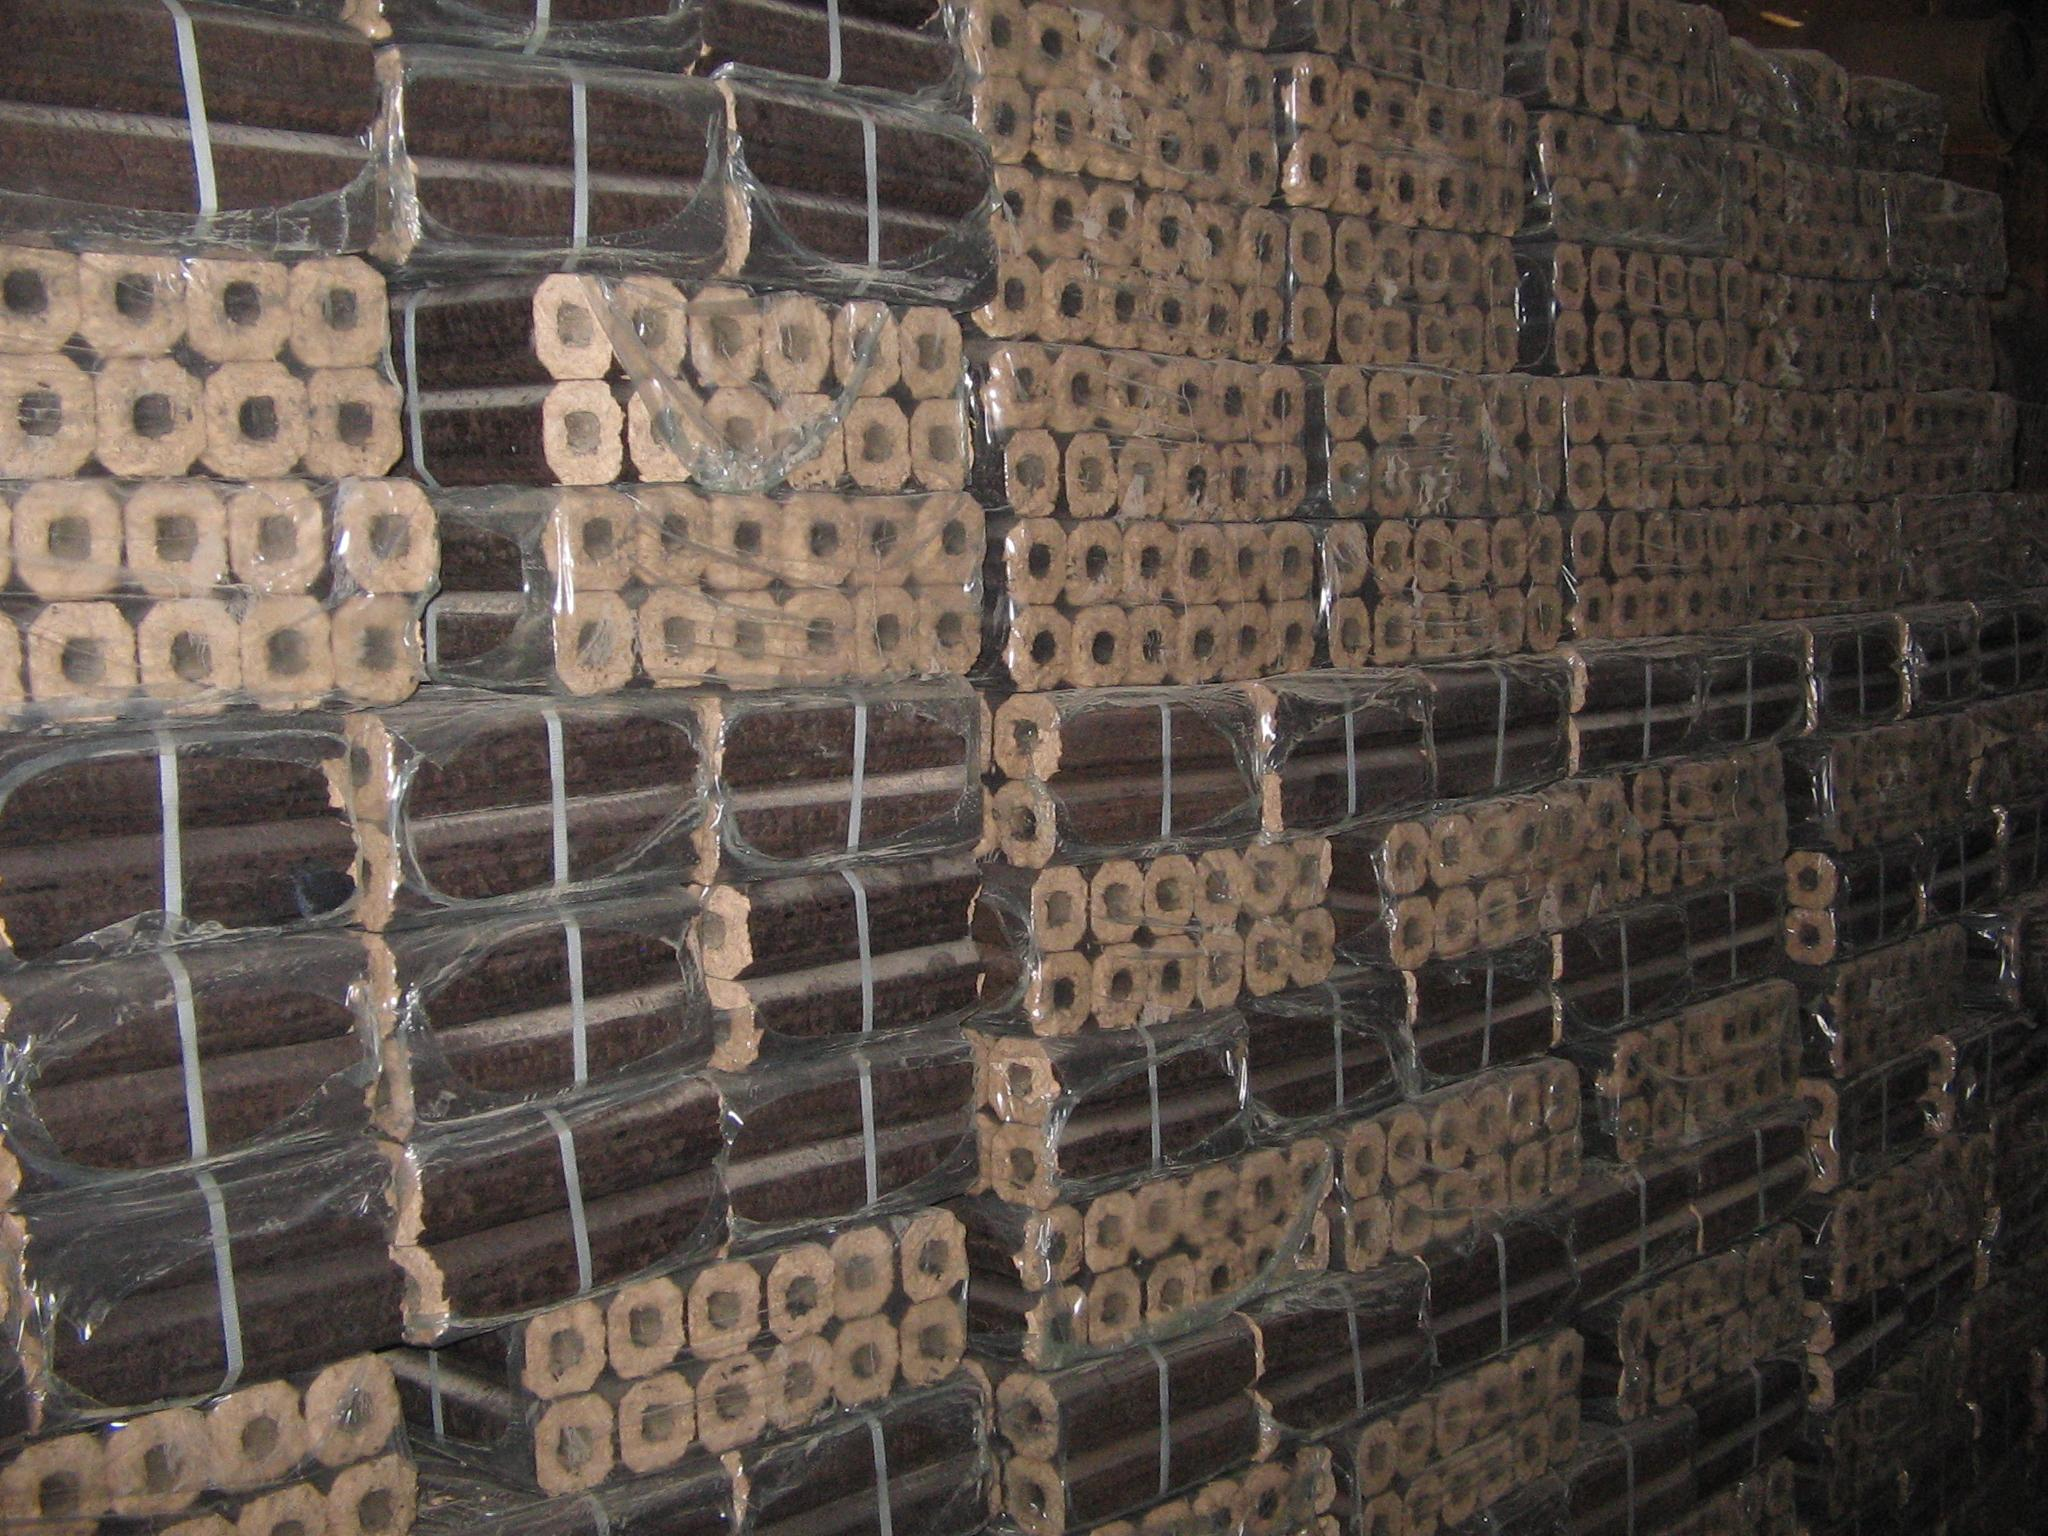 pnini kay, wood briquettes sale, wood briquettes suppliers, wood pellets, how to make wood briquettes wood briquettes sale wood briquettes suppliers, buy wood briquettes, fuel briquettes, wood logs, fire wood,